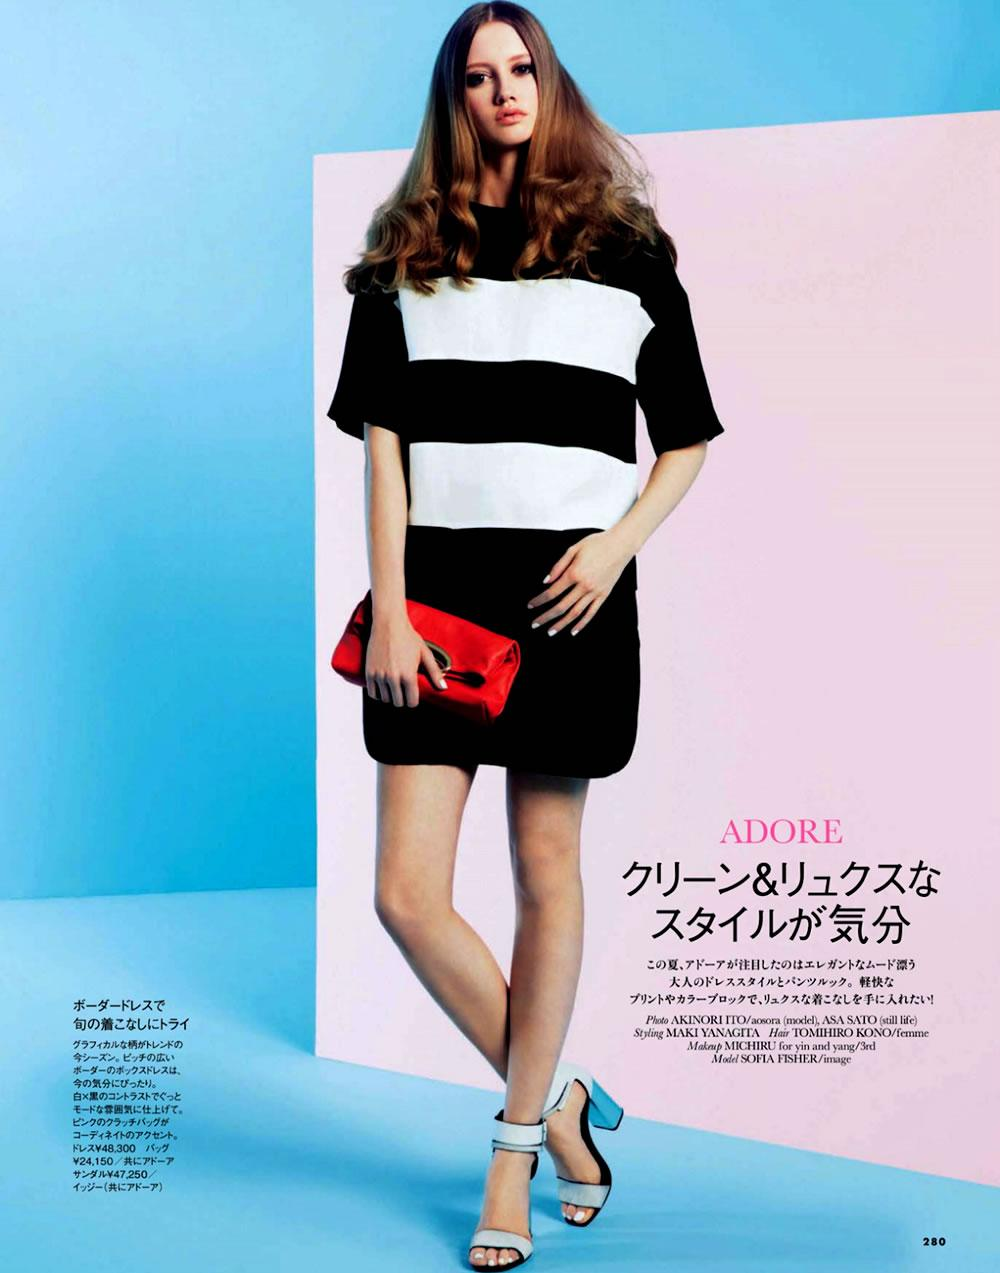 Sofia Fisher by Akinori Ito + Asa Sato for Elle Japan June 2013